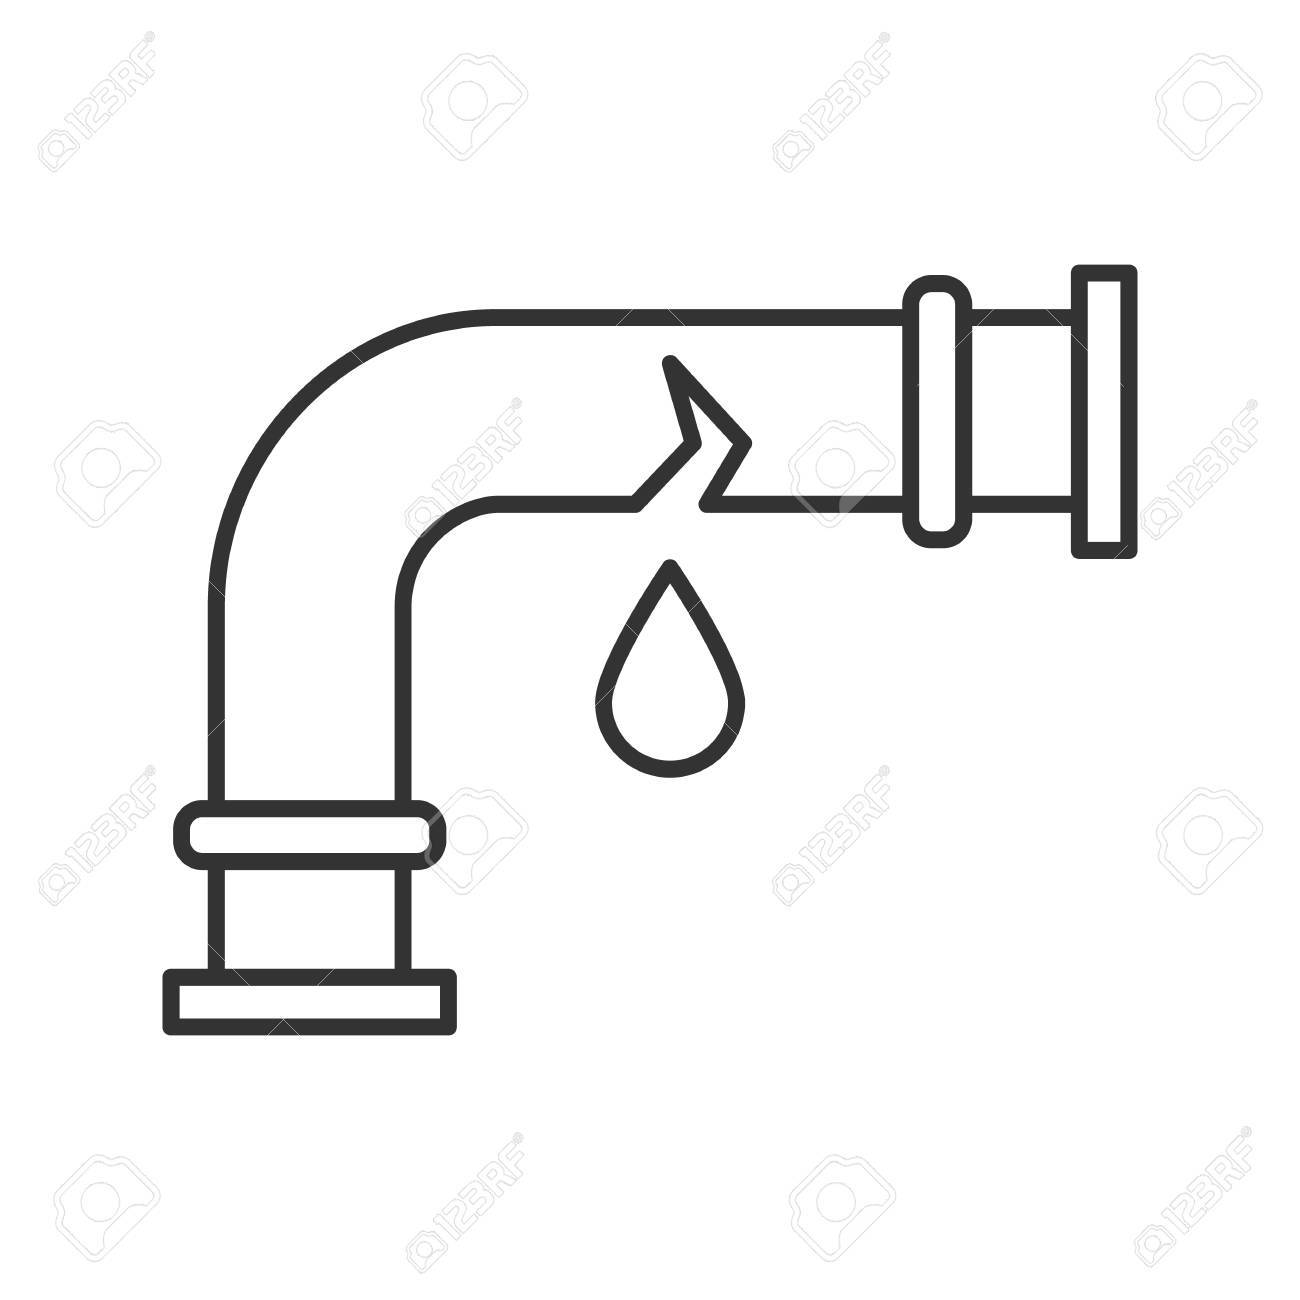 Broken water pipe clipart clip transparent library Broken water pipe linear icon » Clipart Portal clip transparent library